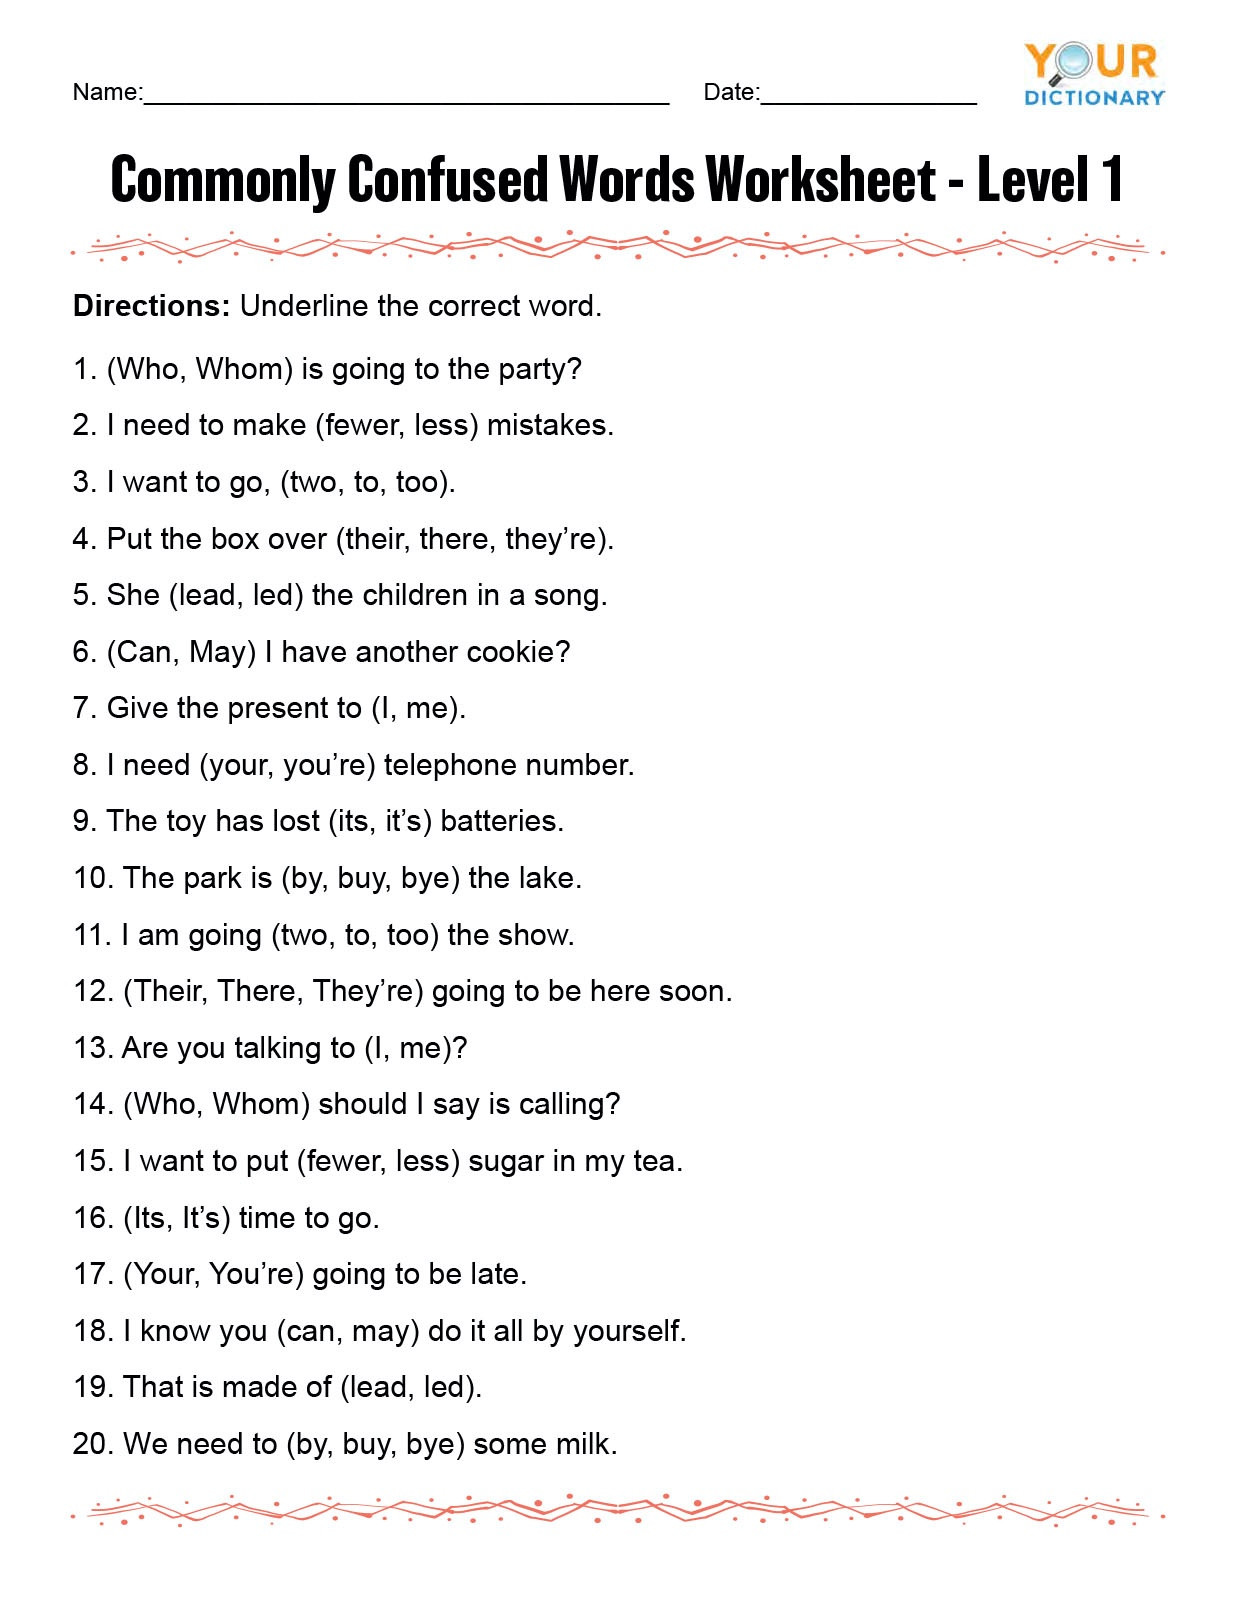 monly confused words worksheet1se